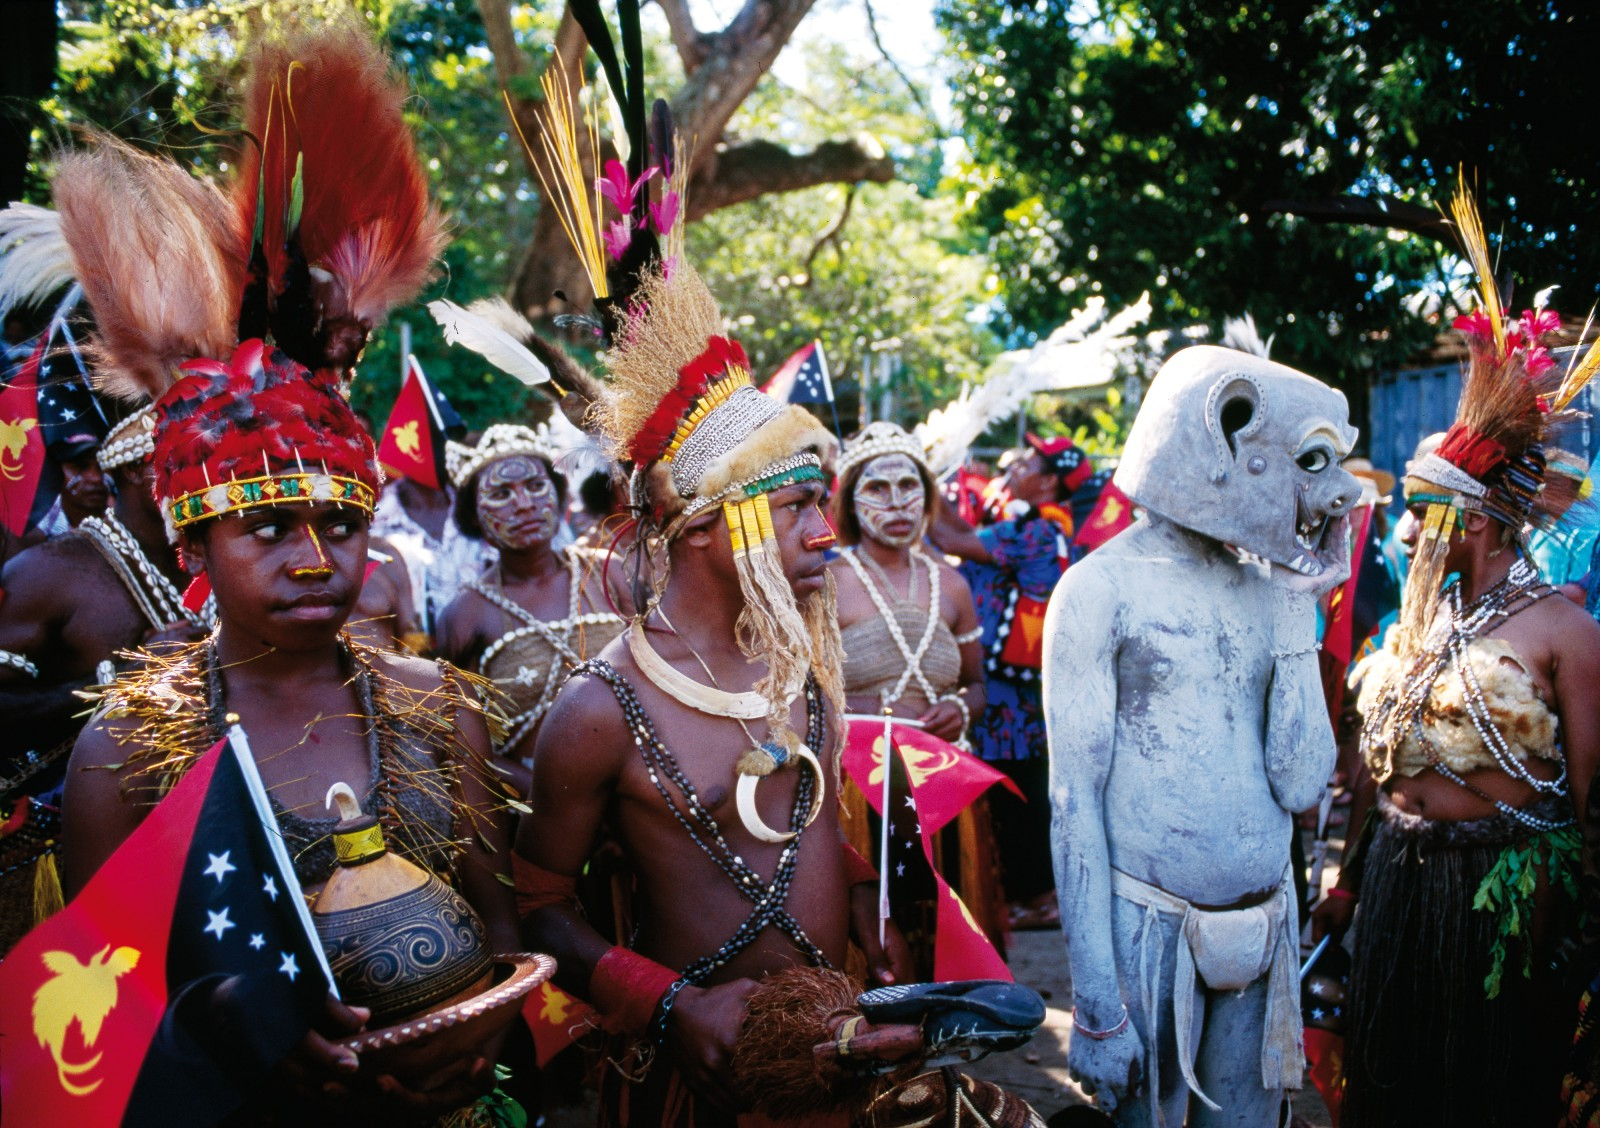 "Dancers gather on the first day of the festival. This troupe, from Goroka in the Eastern Highlands of Papua New Guinea, features resplendent headdresses of bird of paradise feathers that rise and fall in evocative motion during performances. Shells, tusks, gourds and cuscus fur appear as ornaments. The Asaro Mud Man is a legendary figure and popular icon of the festival, disguised with body paint and a large mask made of mud, clay and bark. The figure, said to represent the spirit of a dead person, frightens away potential enemies and carries a whisk to ""shoo away the flies that hover over his rotten flesh""."